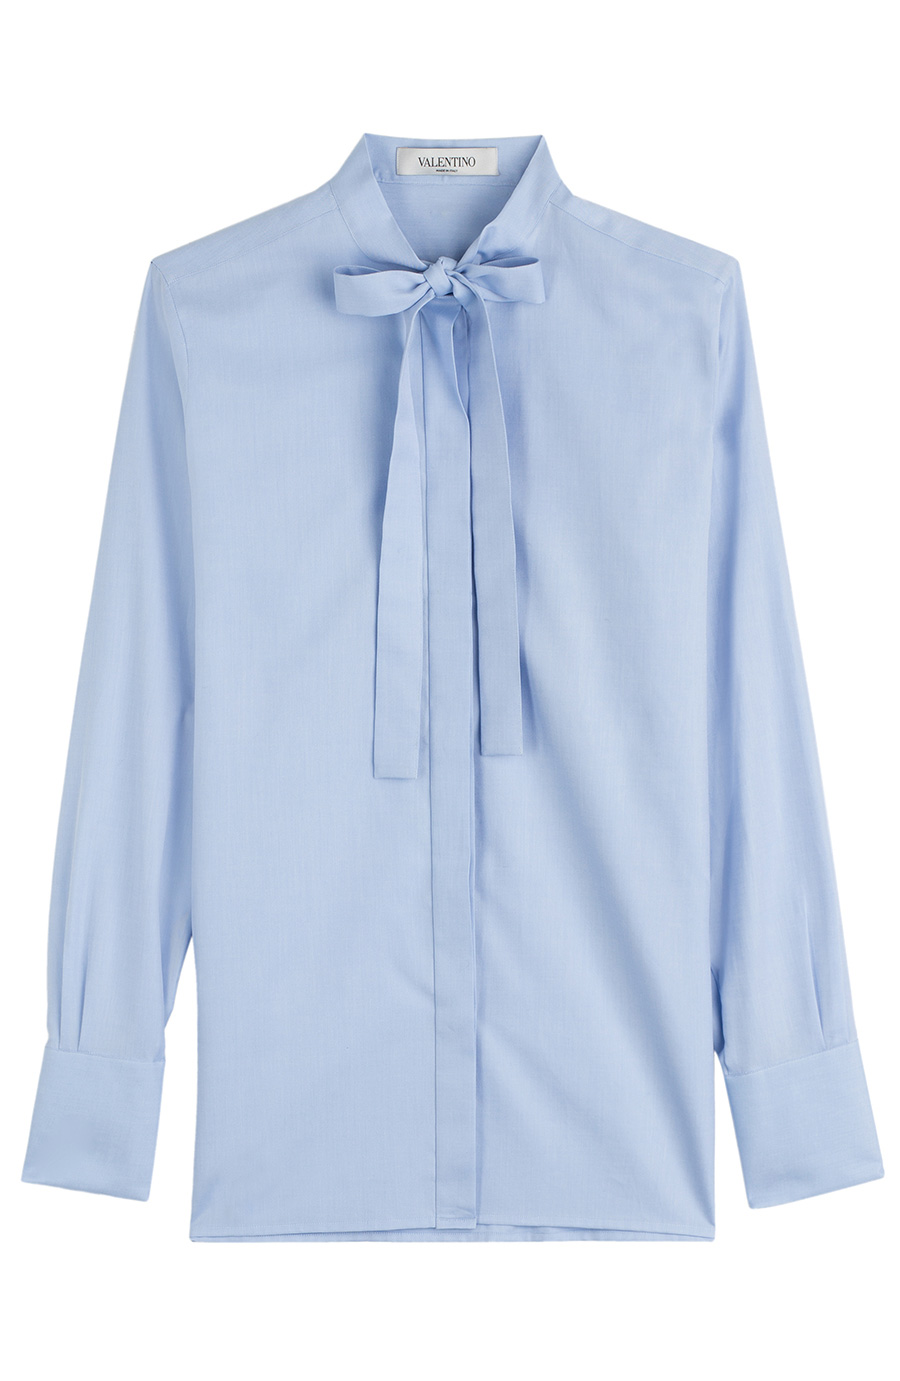 Cotton poplin blouse with pussy bow